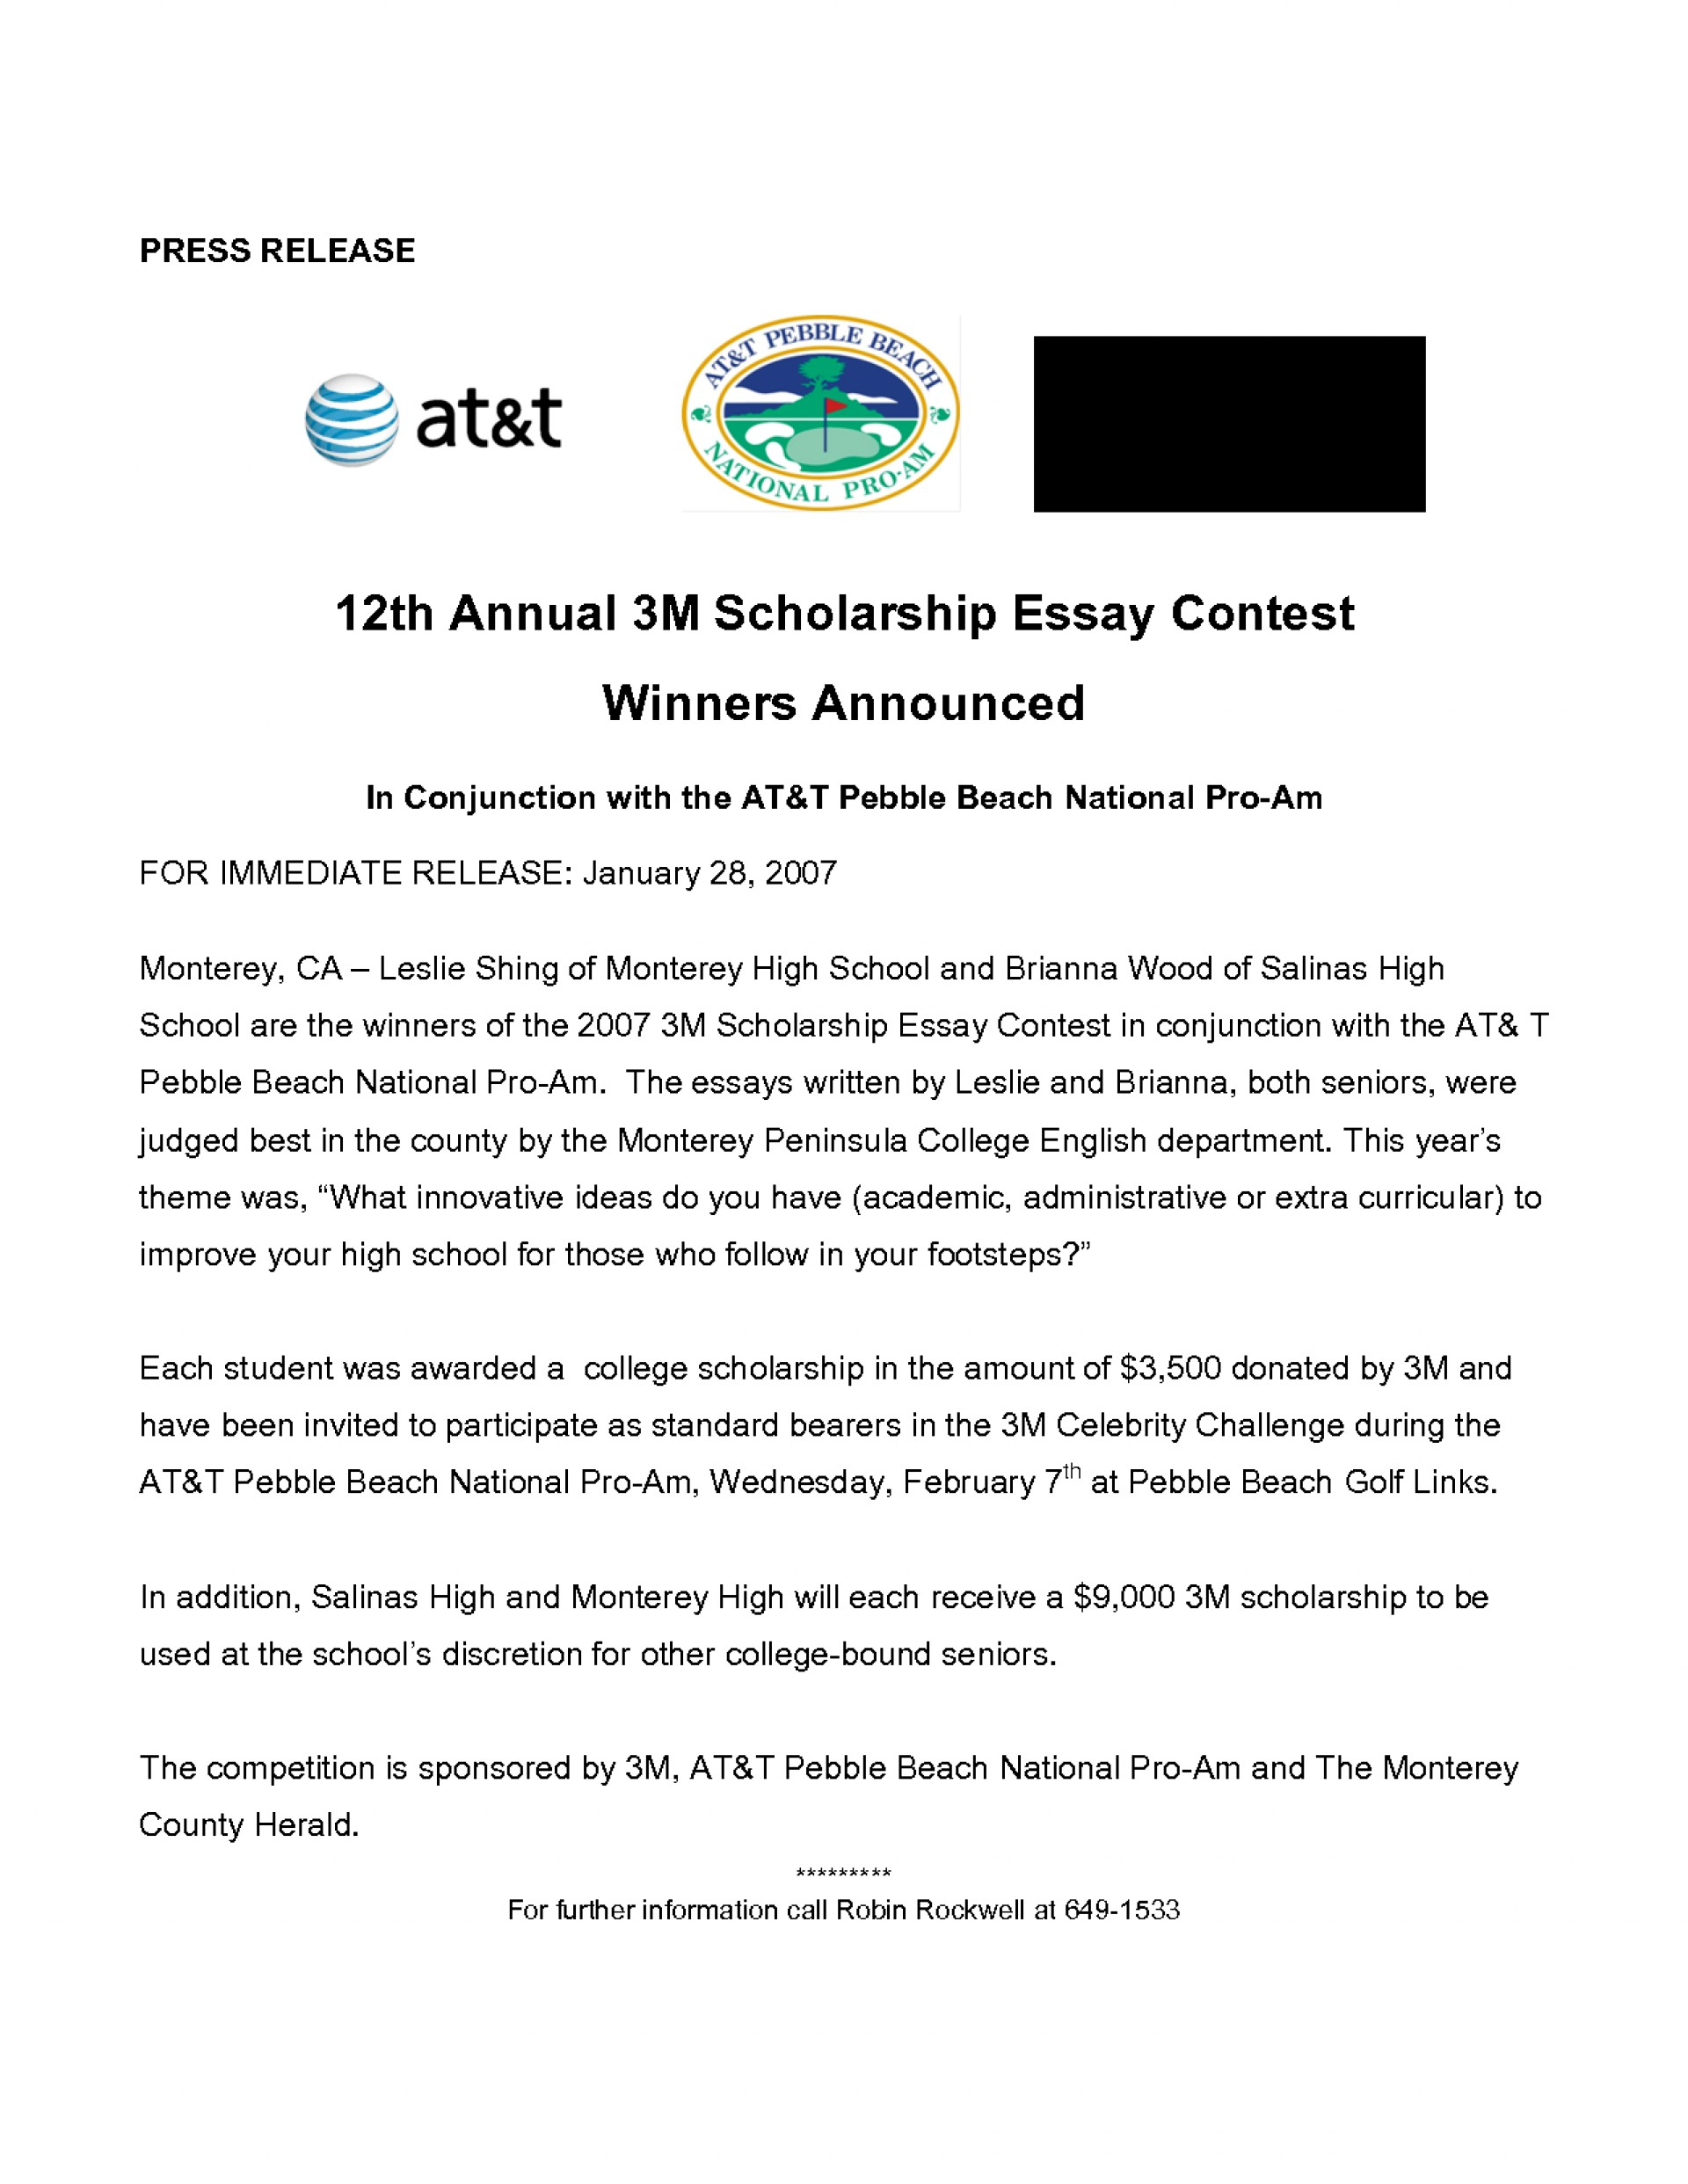 001 High School Scholarship Application Essay Help Contests For Juniors Scholarships 3 No Example Breathtaking Seniors 2017 2019 Louisiana 1920